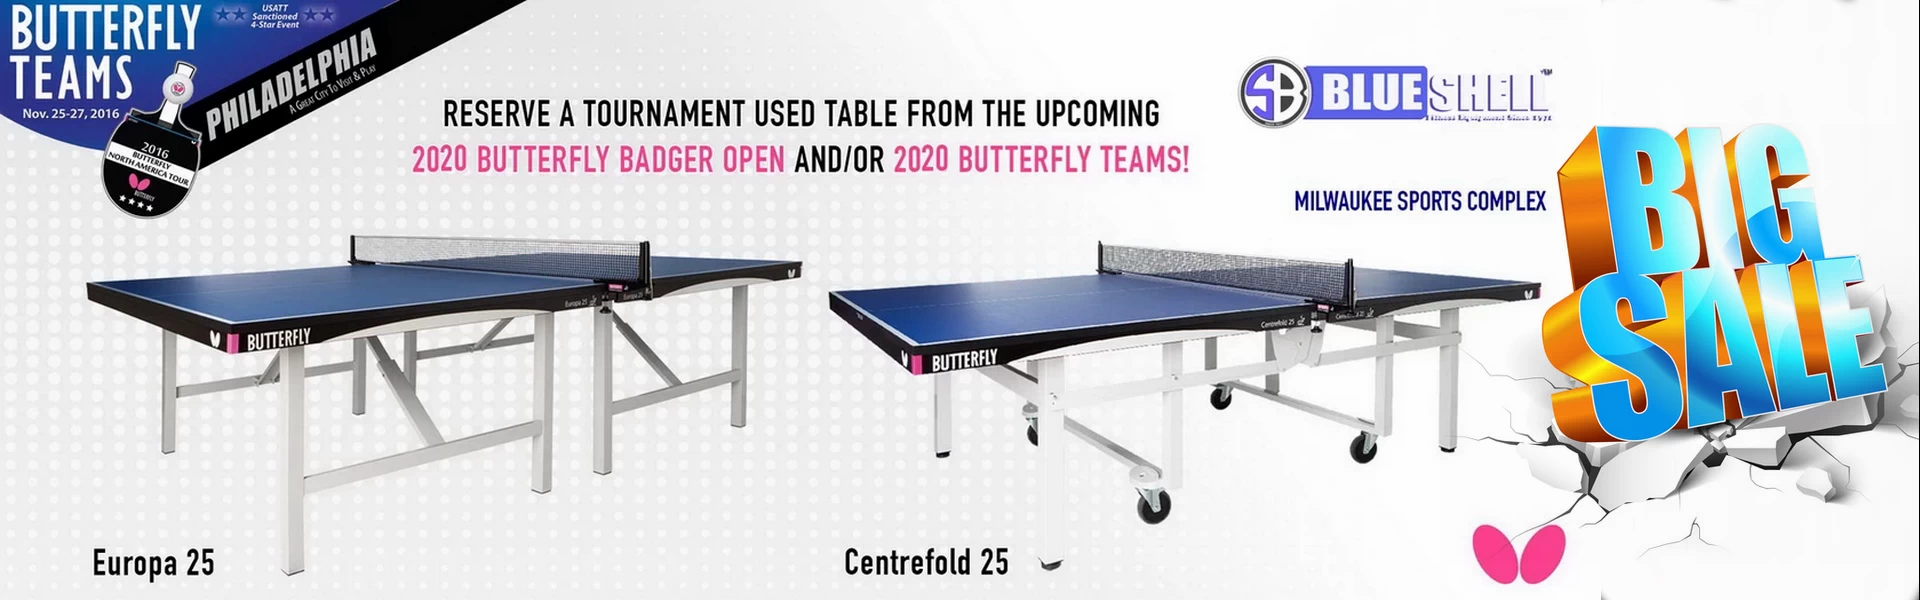 Butterfly Table Tennis Tables For Sale